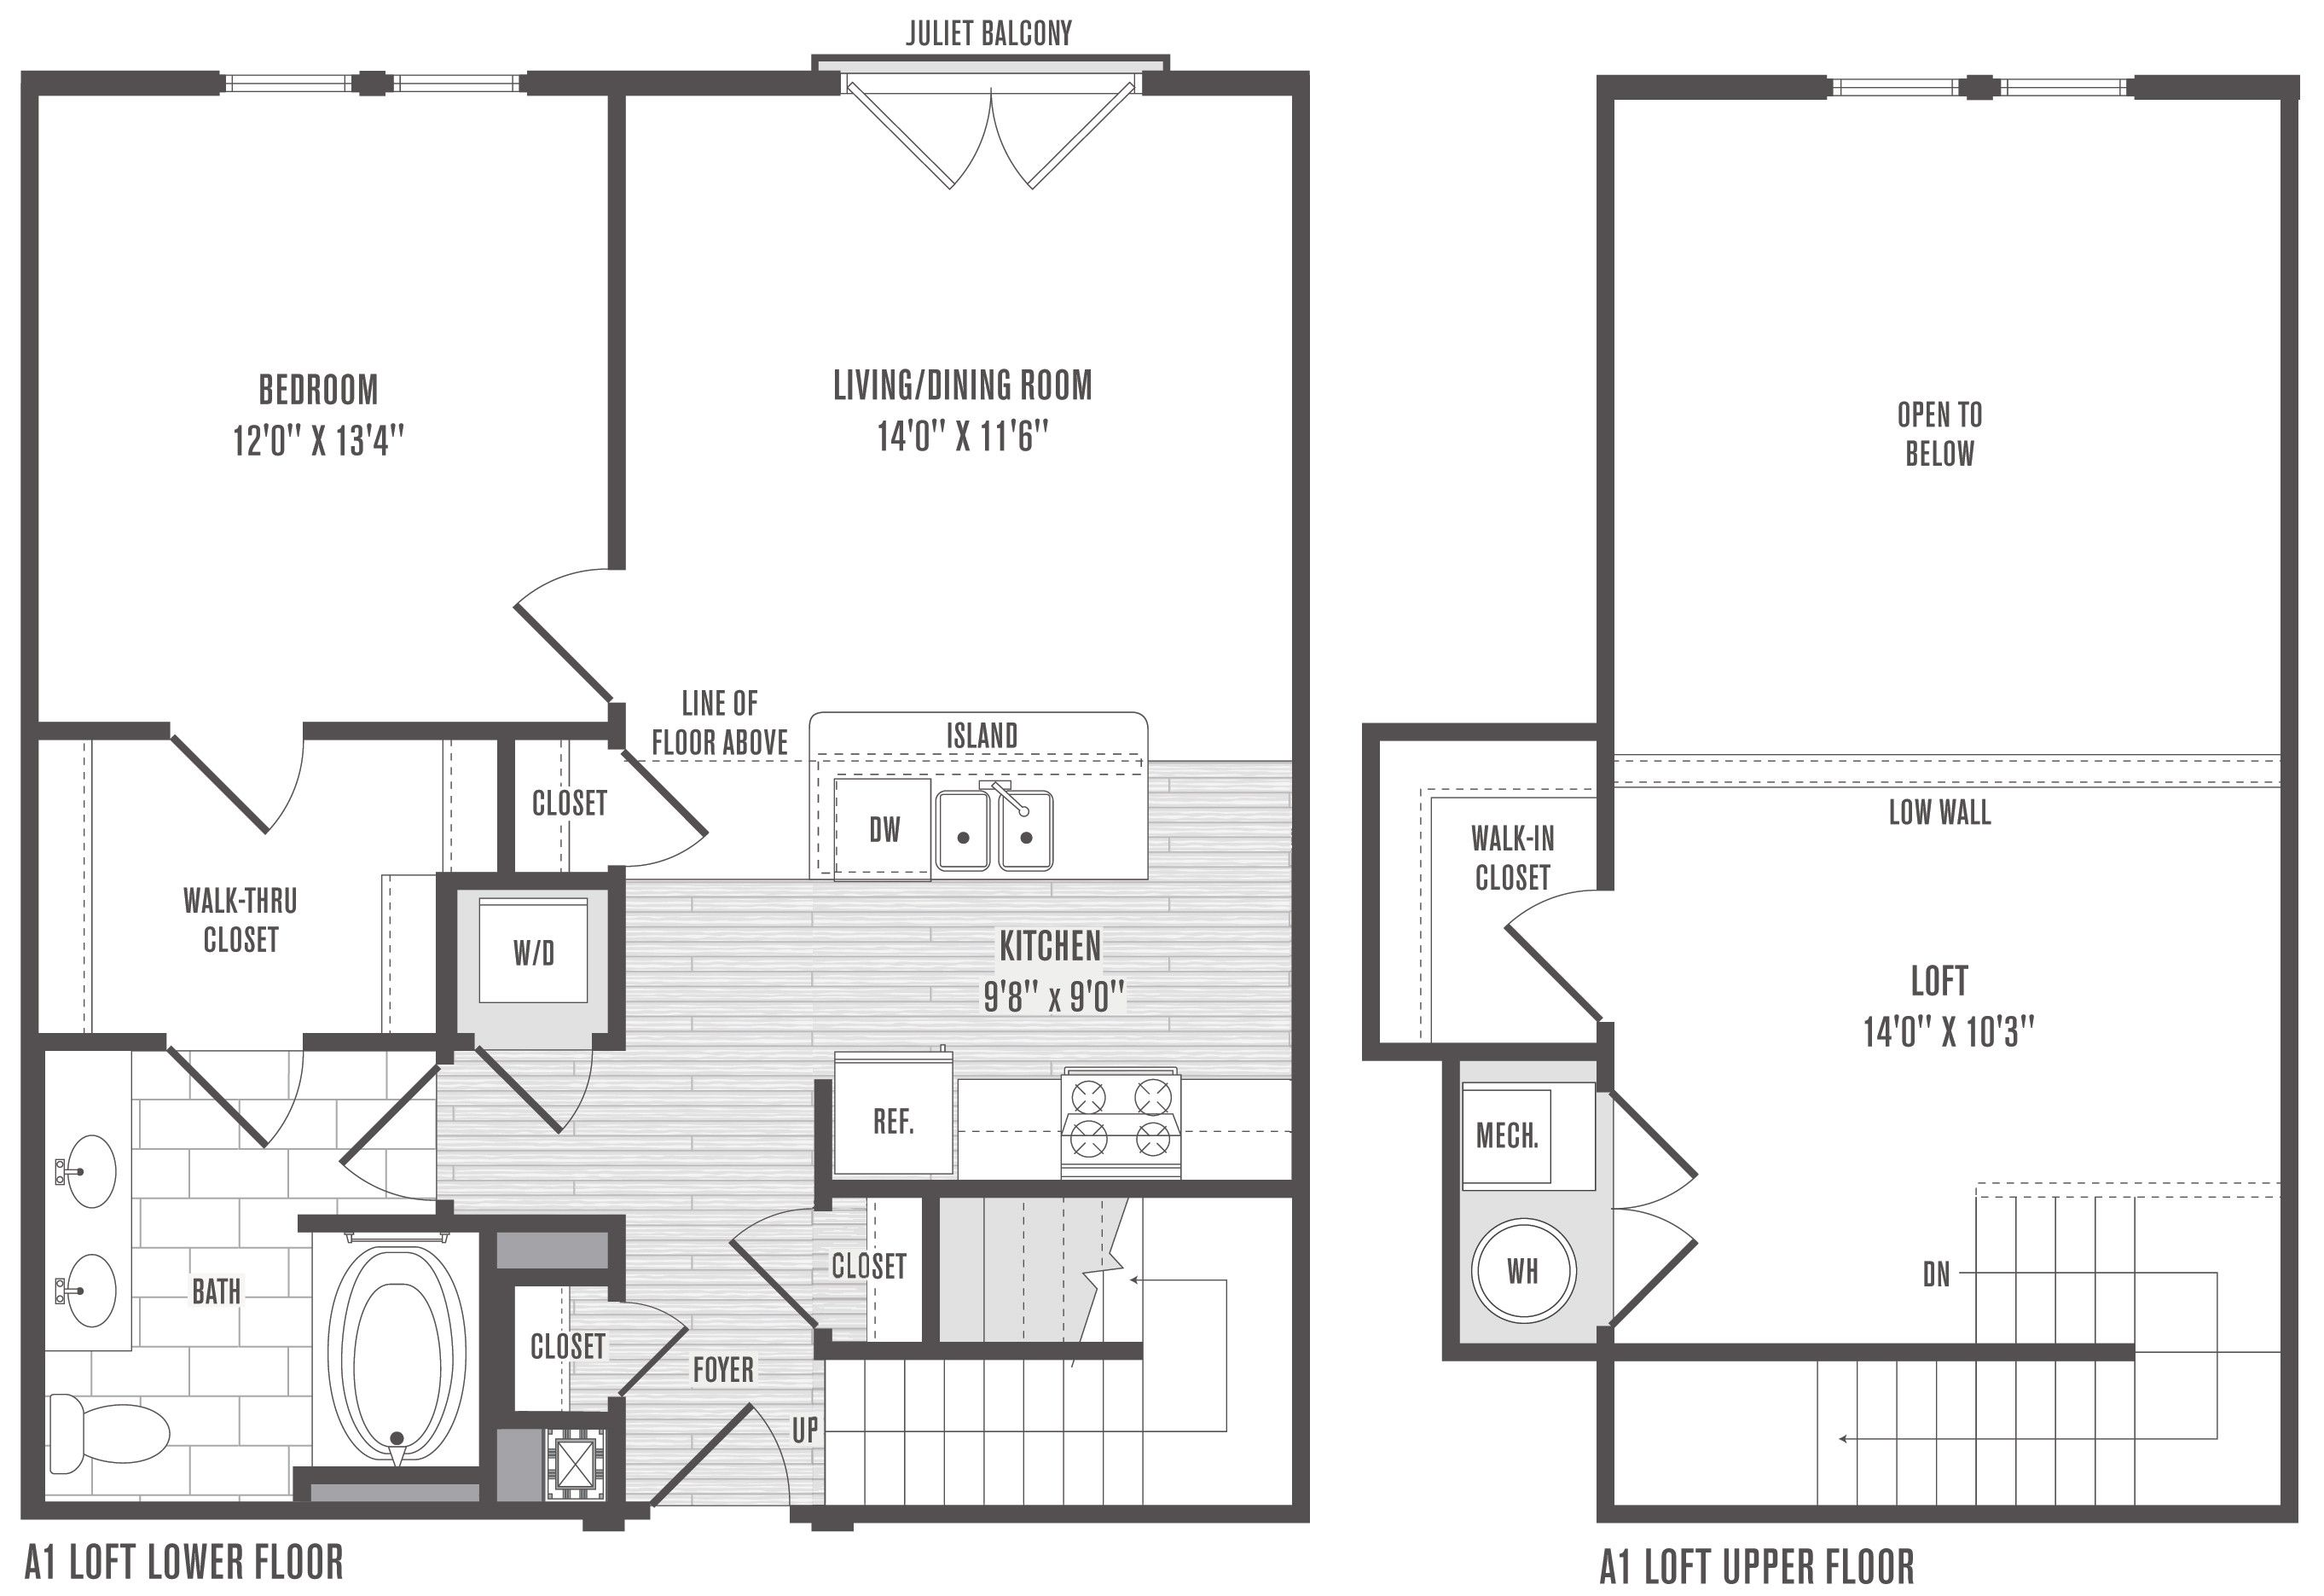 1 Bedroom Basement Apartment Floor Plans Turn Basement Into Apartment Inspirational 1 Bedroom Floor Plans Sofa